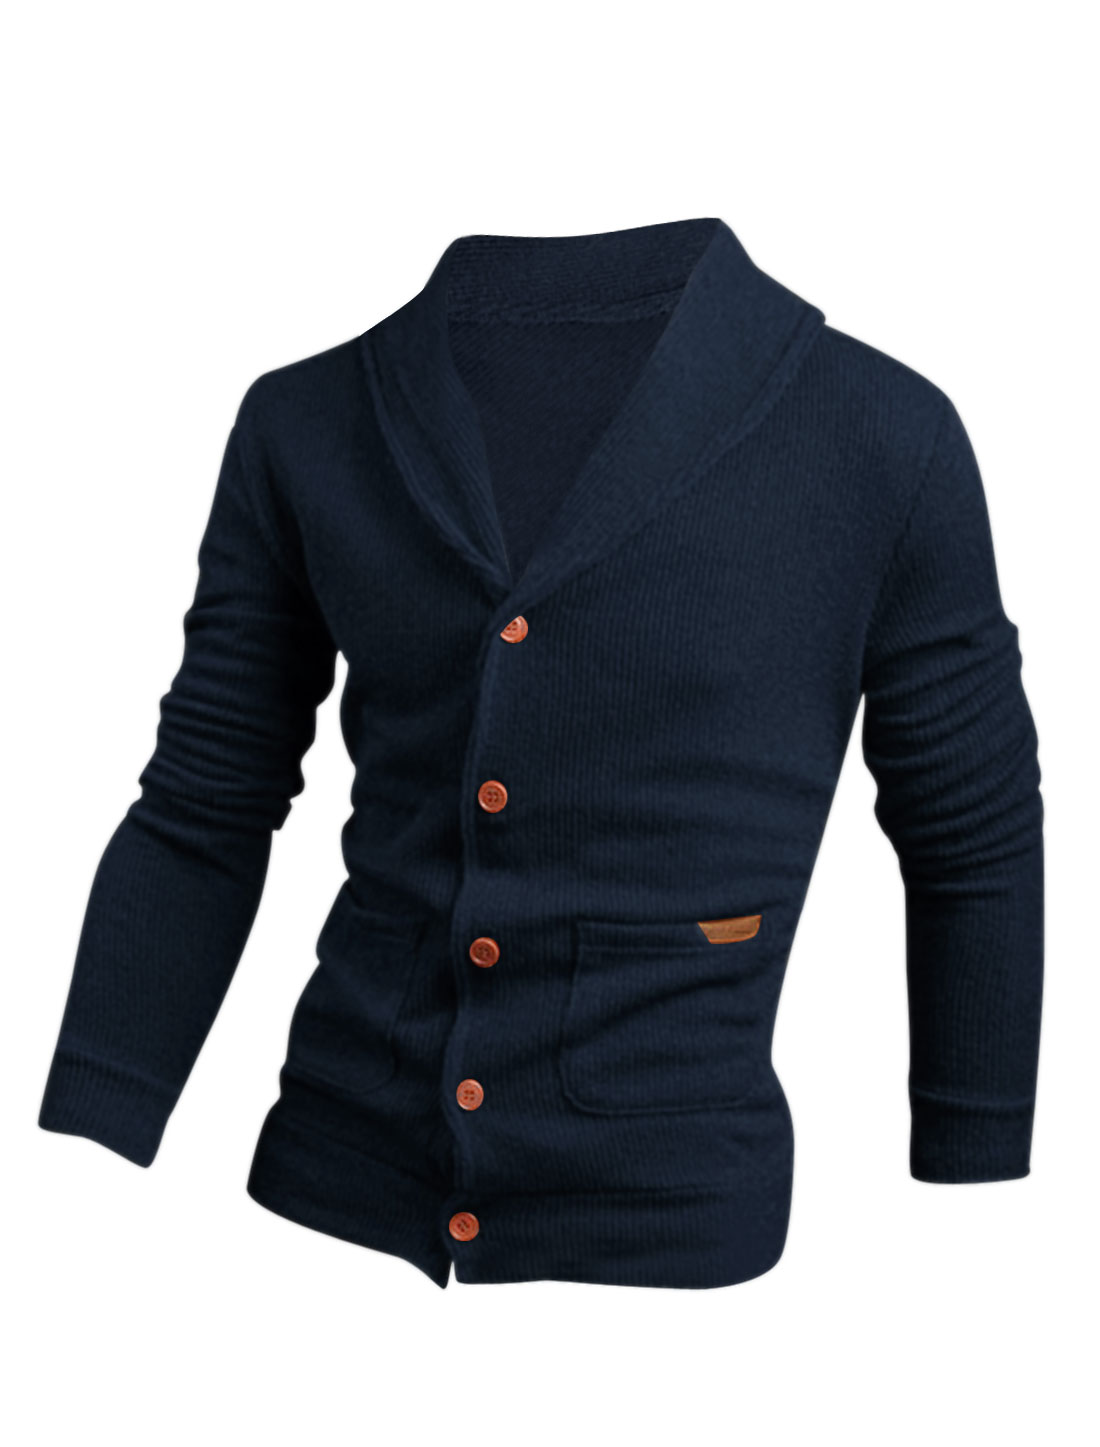 Men Button Closure Double Vertical Pockets Slim Cardigan Navy Blue M